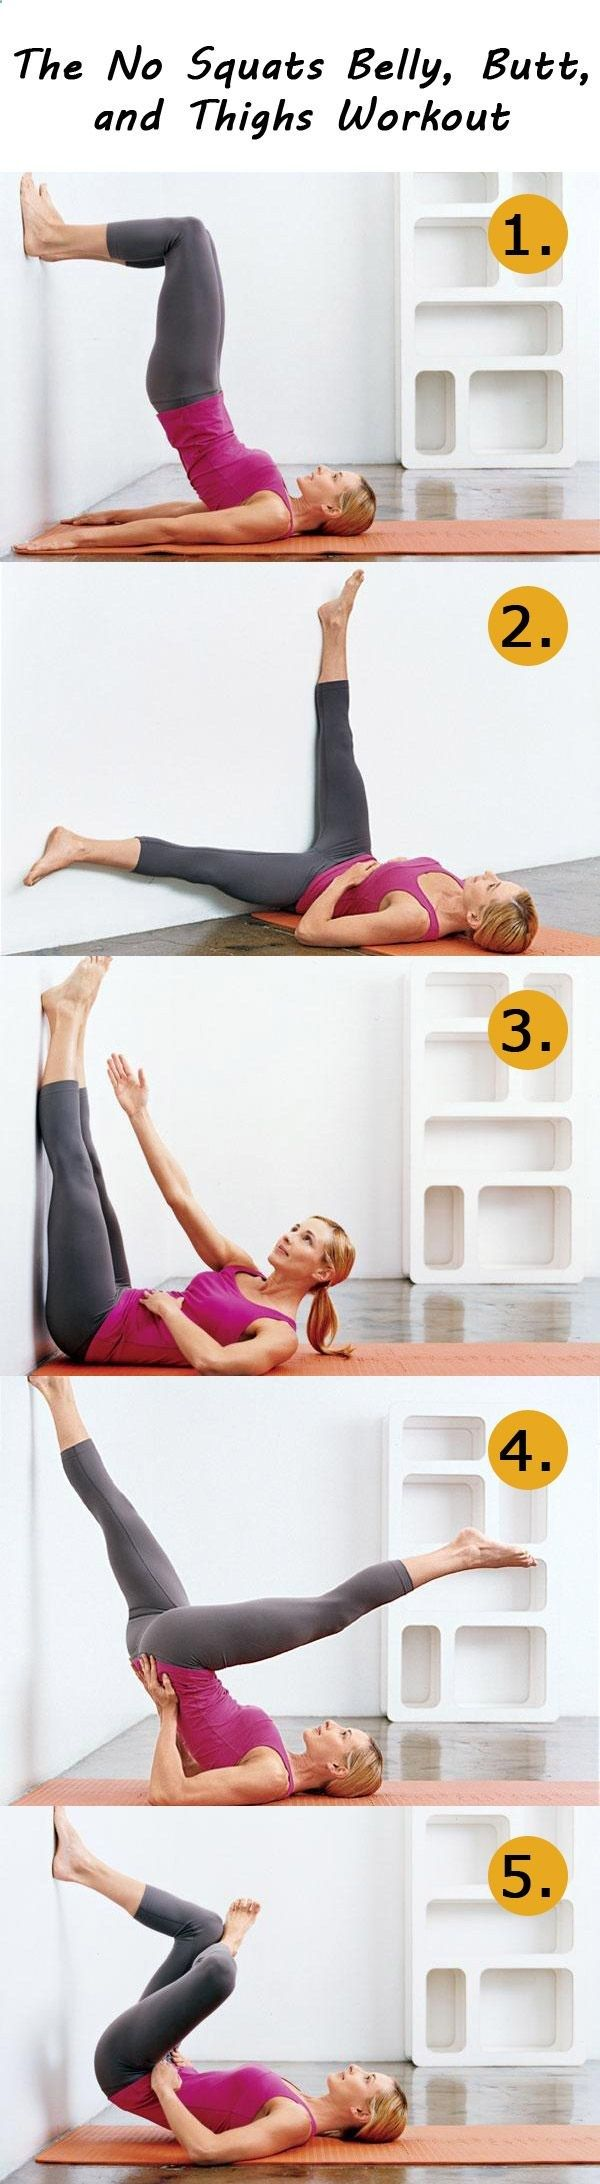 The No Squats Belly, Butt, and Thighs Workout : with this fantastic workout routine you will be able to flatten your belly, slim your thighs, and firm your butt in 2 weeks! via Prevention Magazine